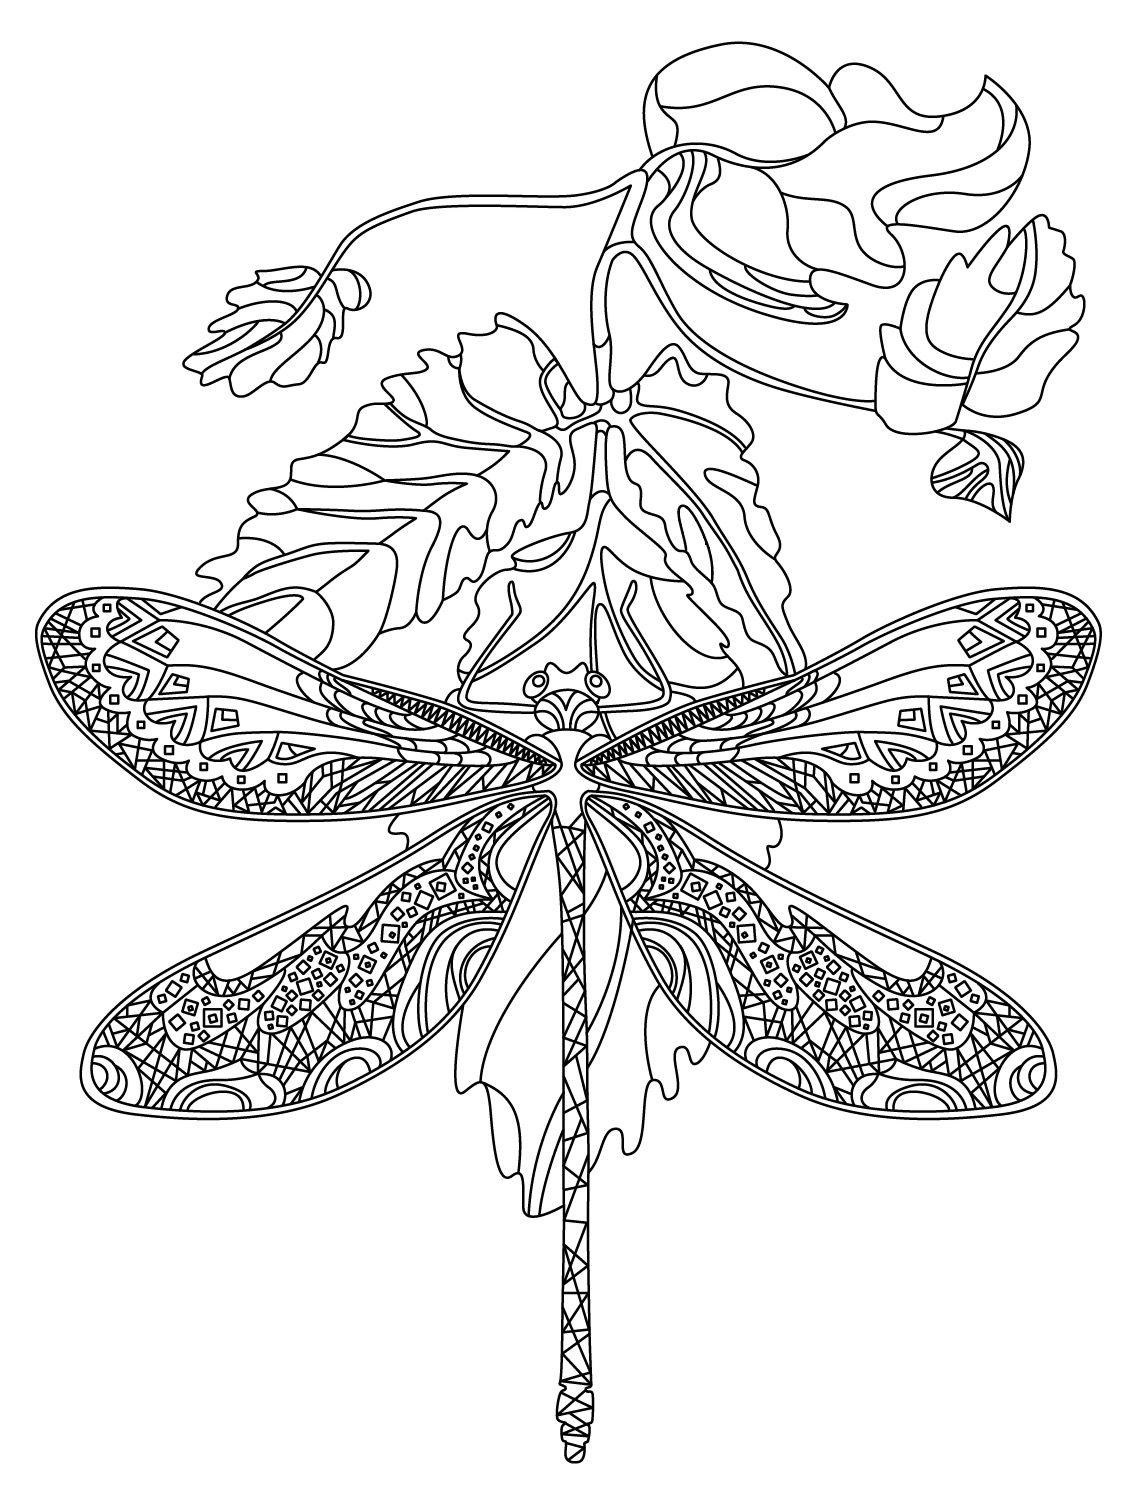 Dragonfly Colorish Coloring Book App For Adults By Goodsofttech Mandala Coloring Pages Coloring Pages Mandala Coloring